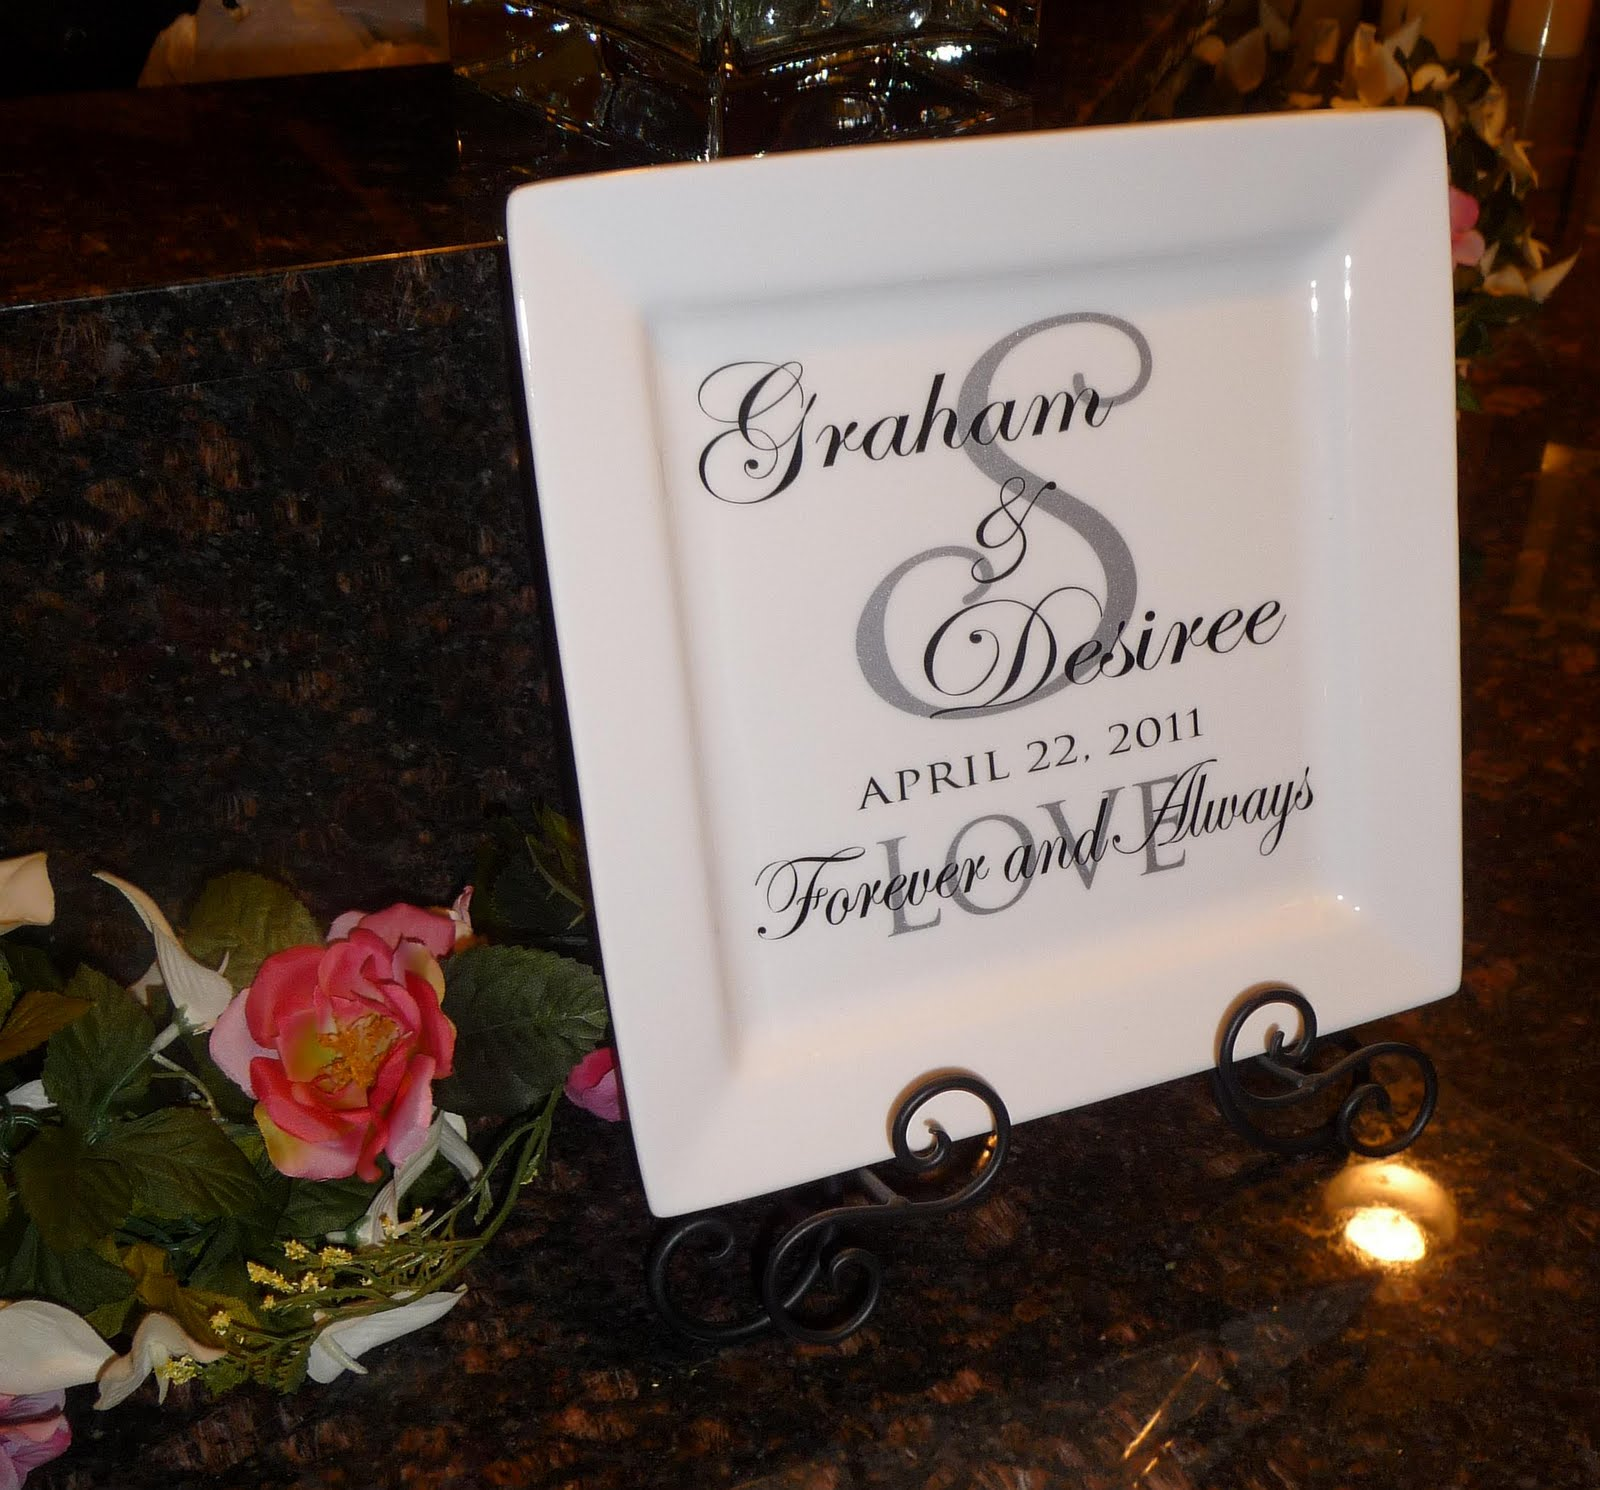 Chers Signs by Design: Personalized Wedding Gifts/ Decorations